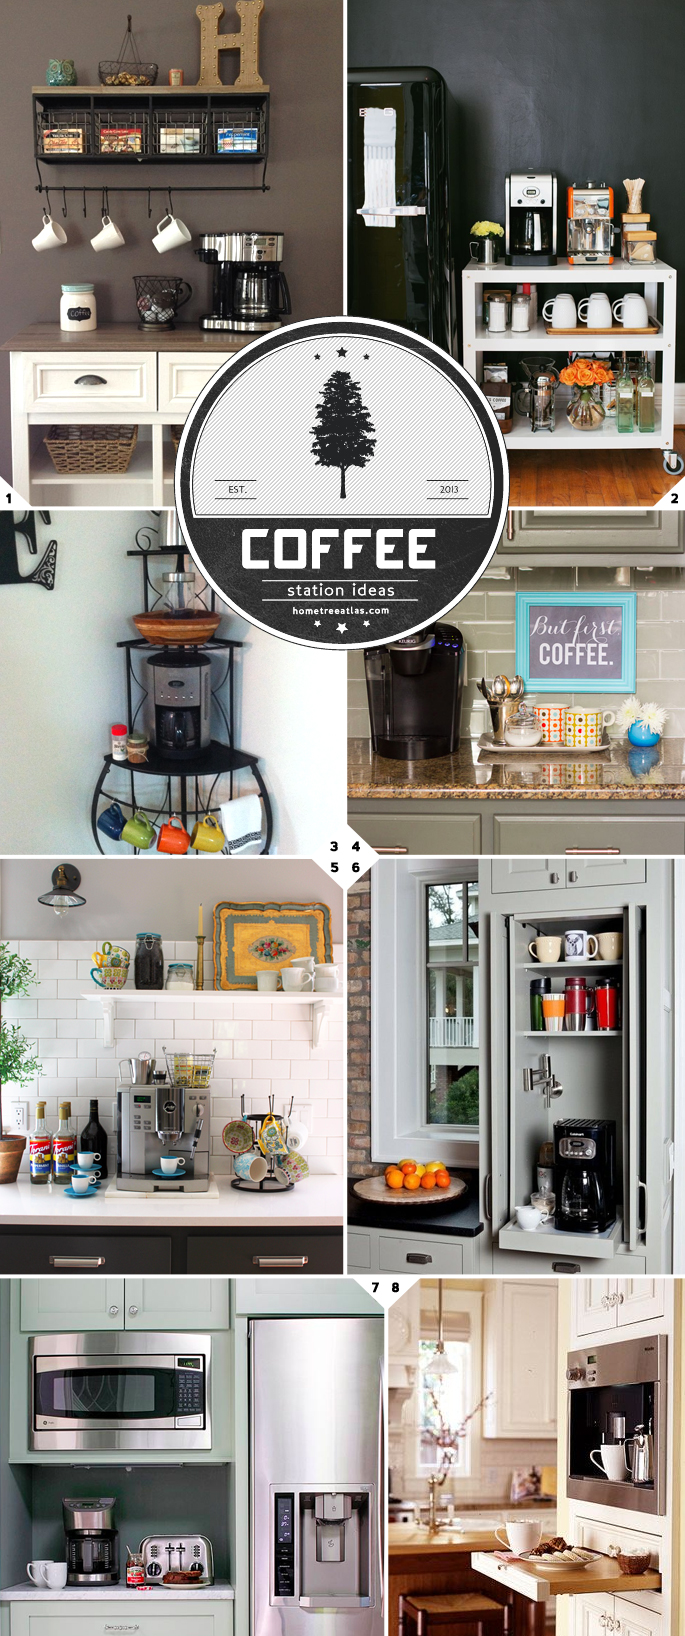 Home Barista: Kitchen Coffee Station Ideas and Designs ...